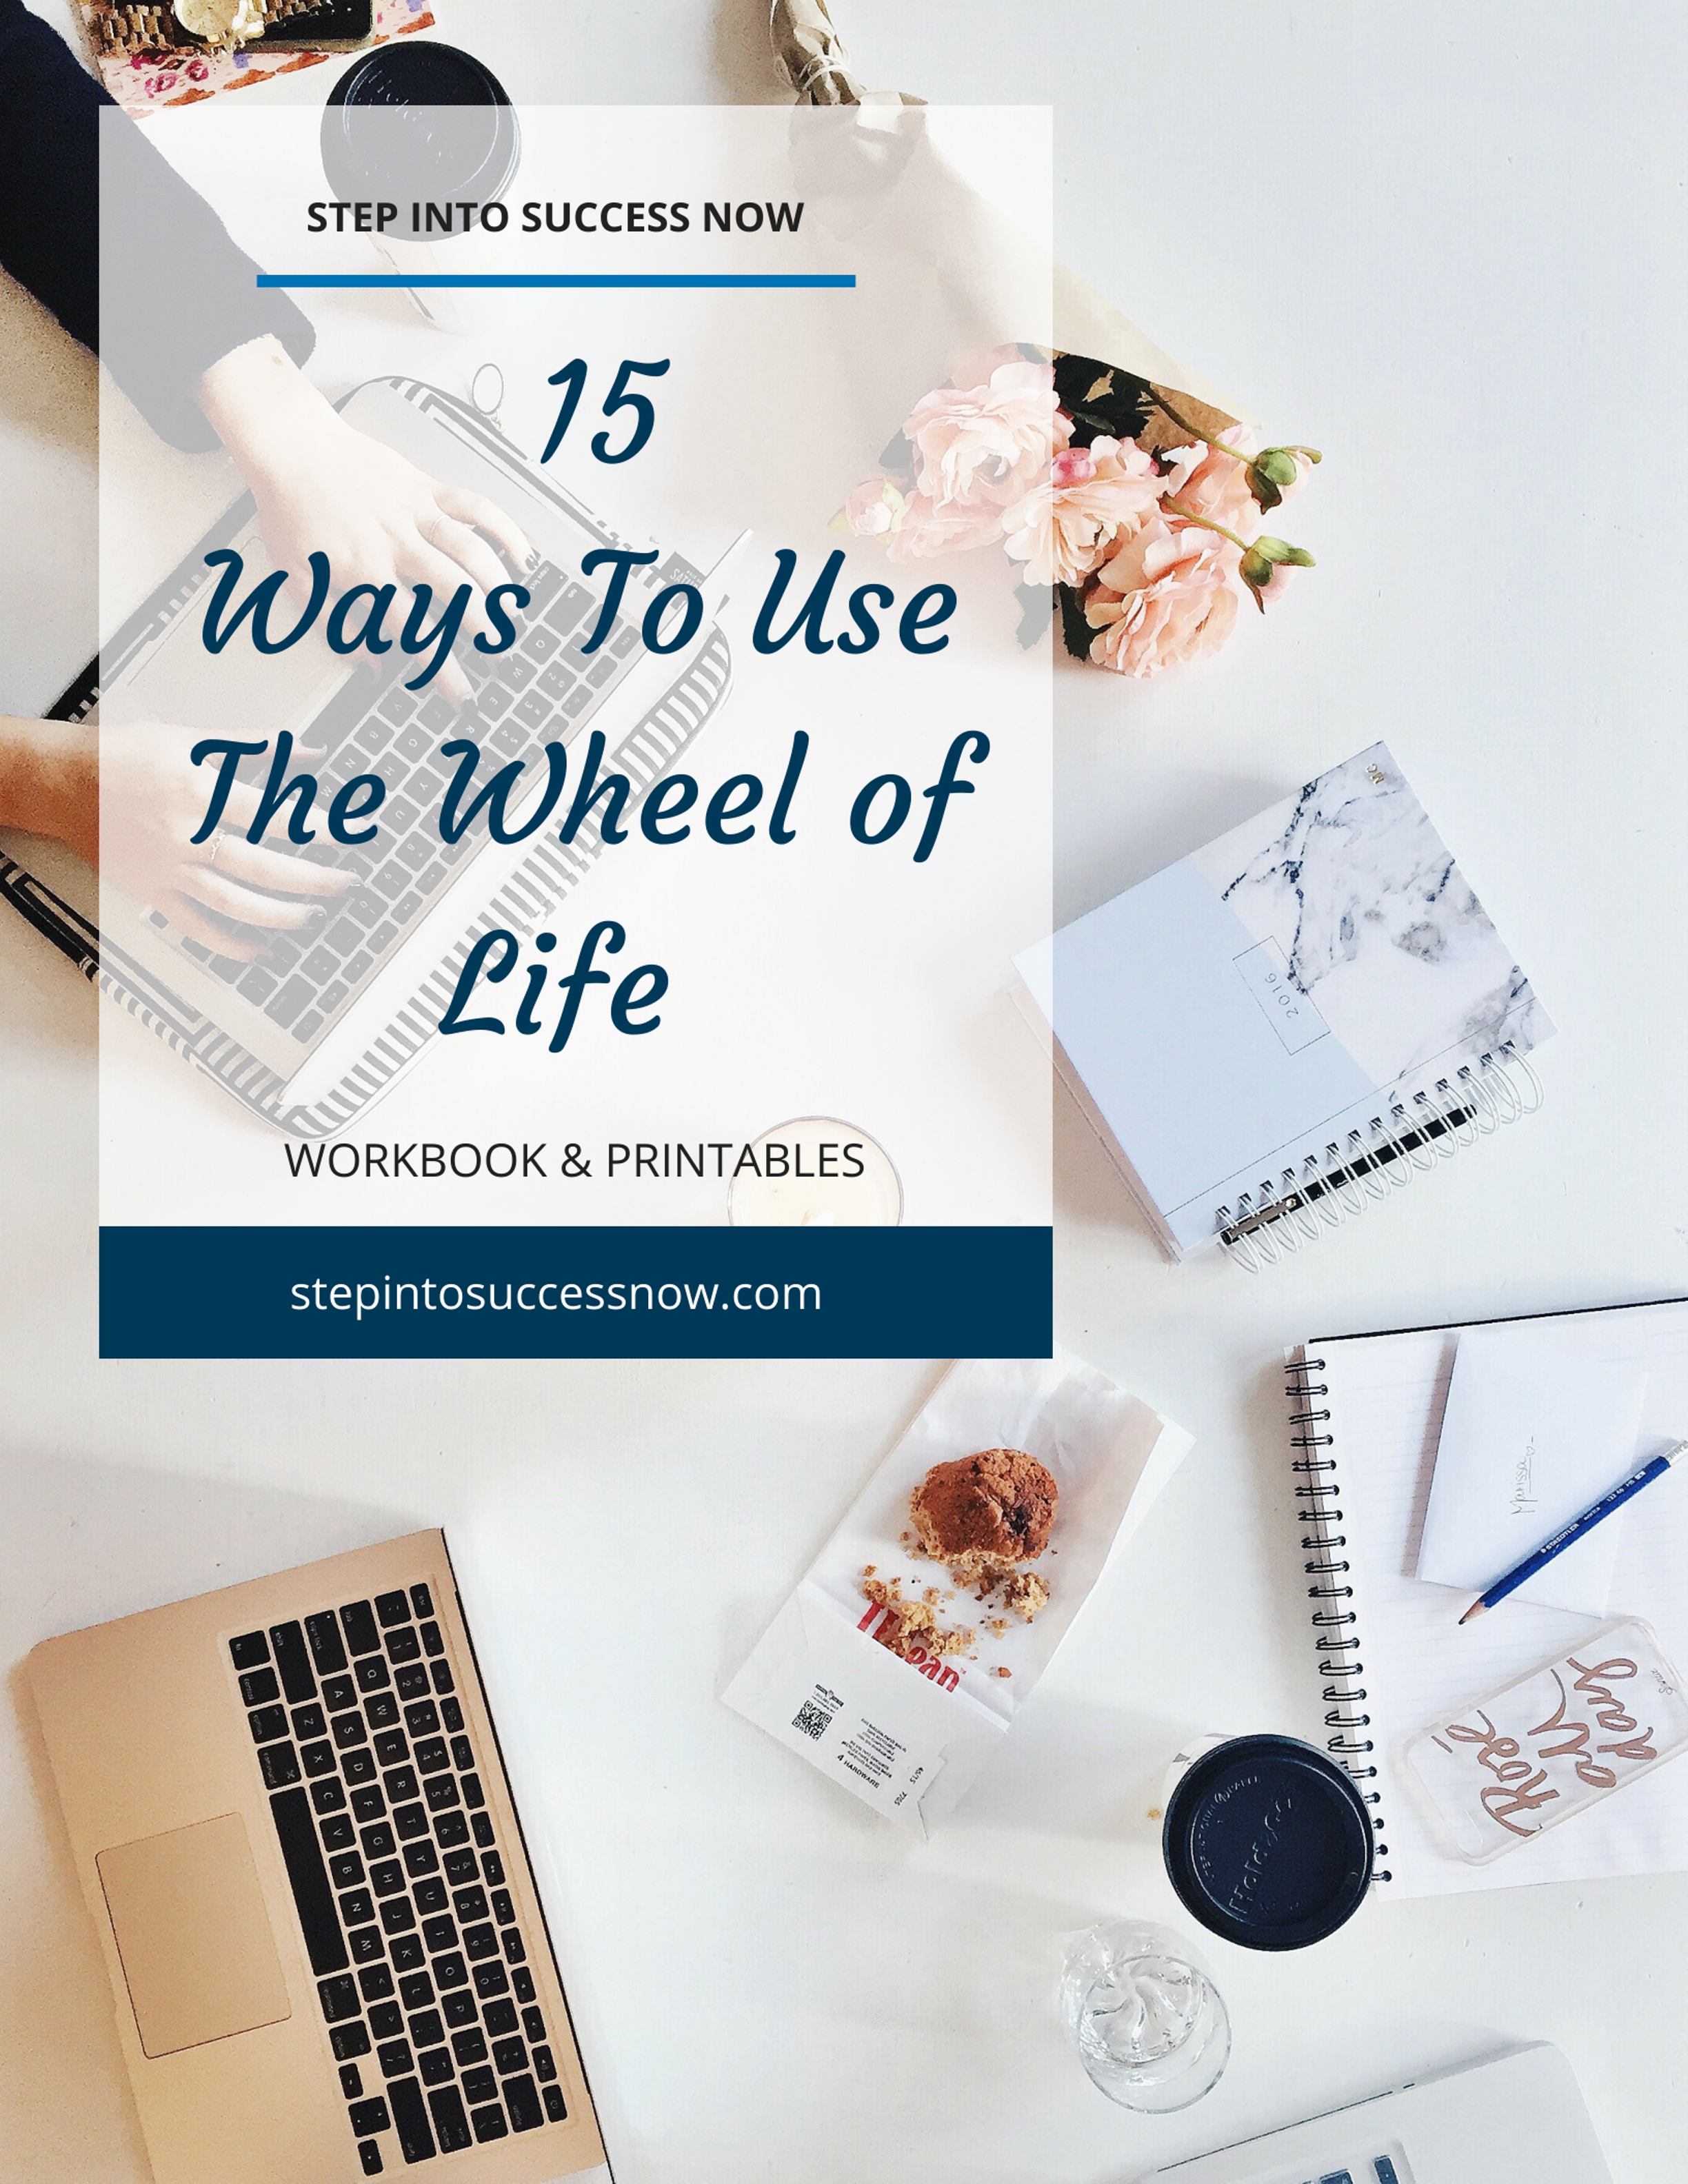 15 Ways To Use the Wheel of Life in Your Coaching Business: Guidebook and Printables